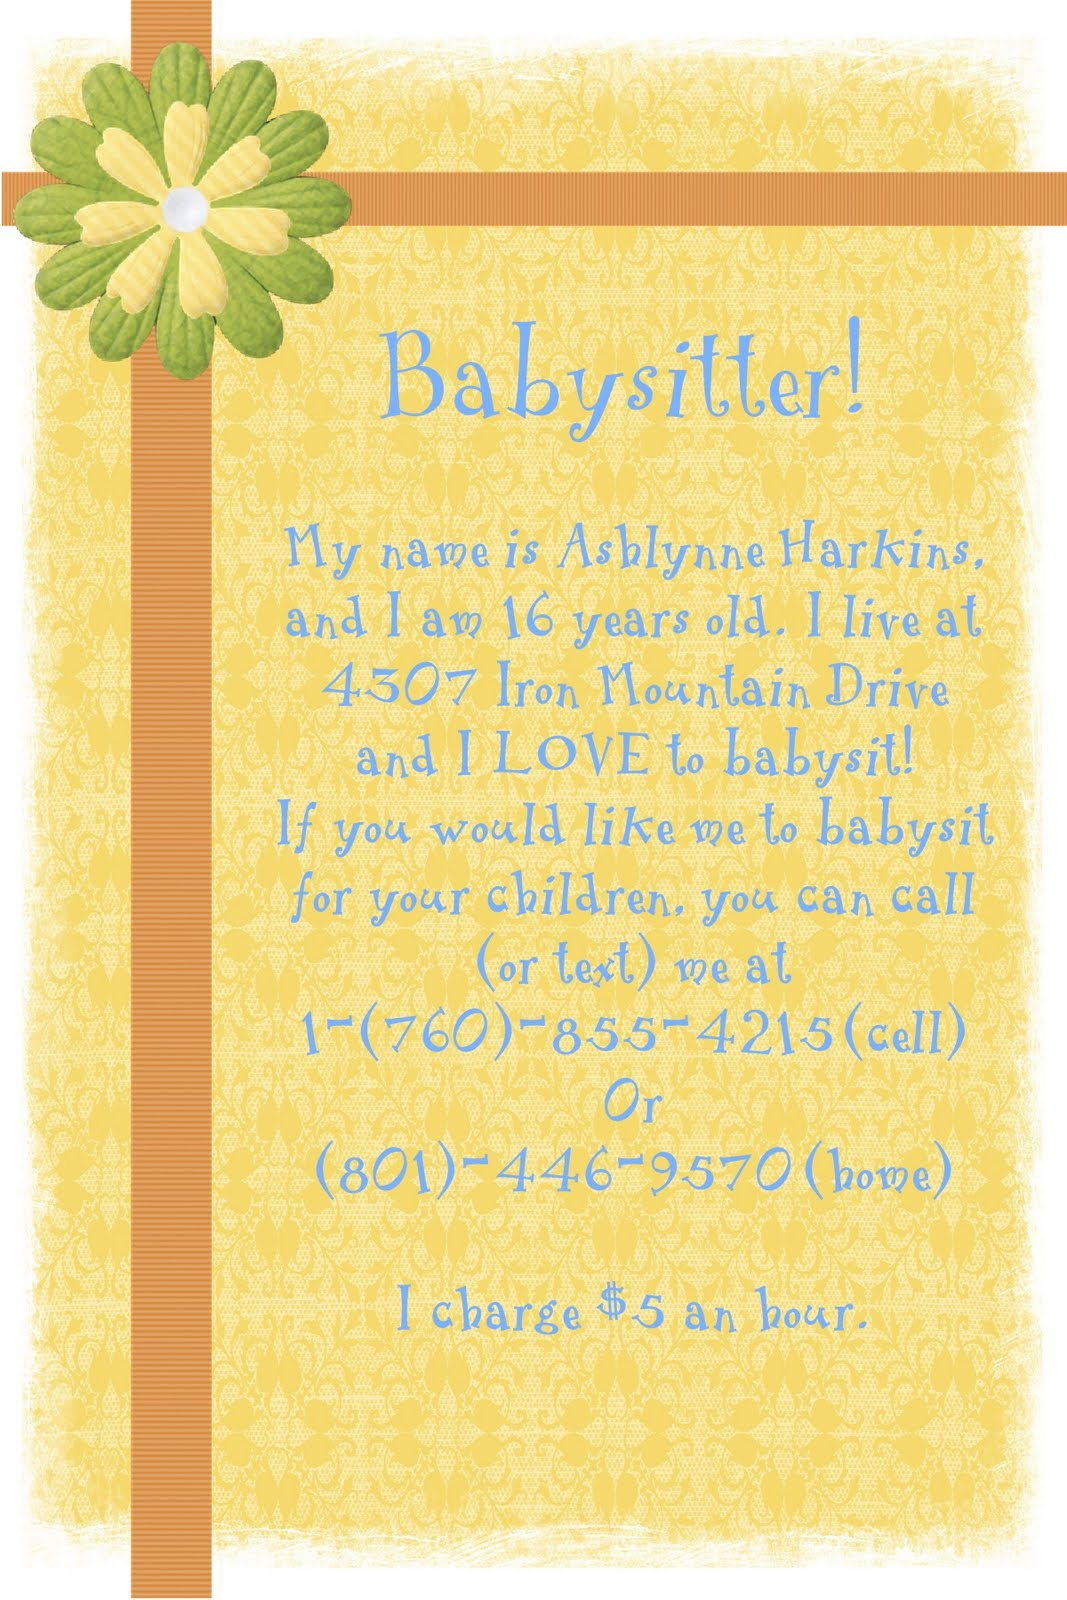 babysitting flyer templates cf babysitting flyer template microsoft word